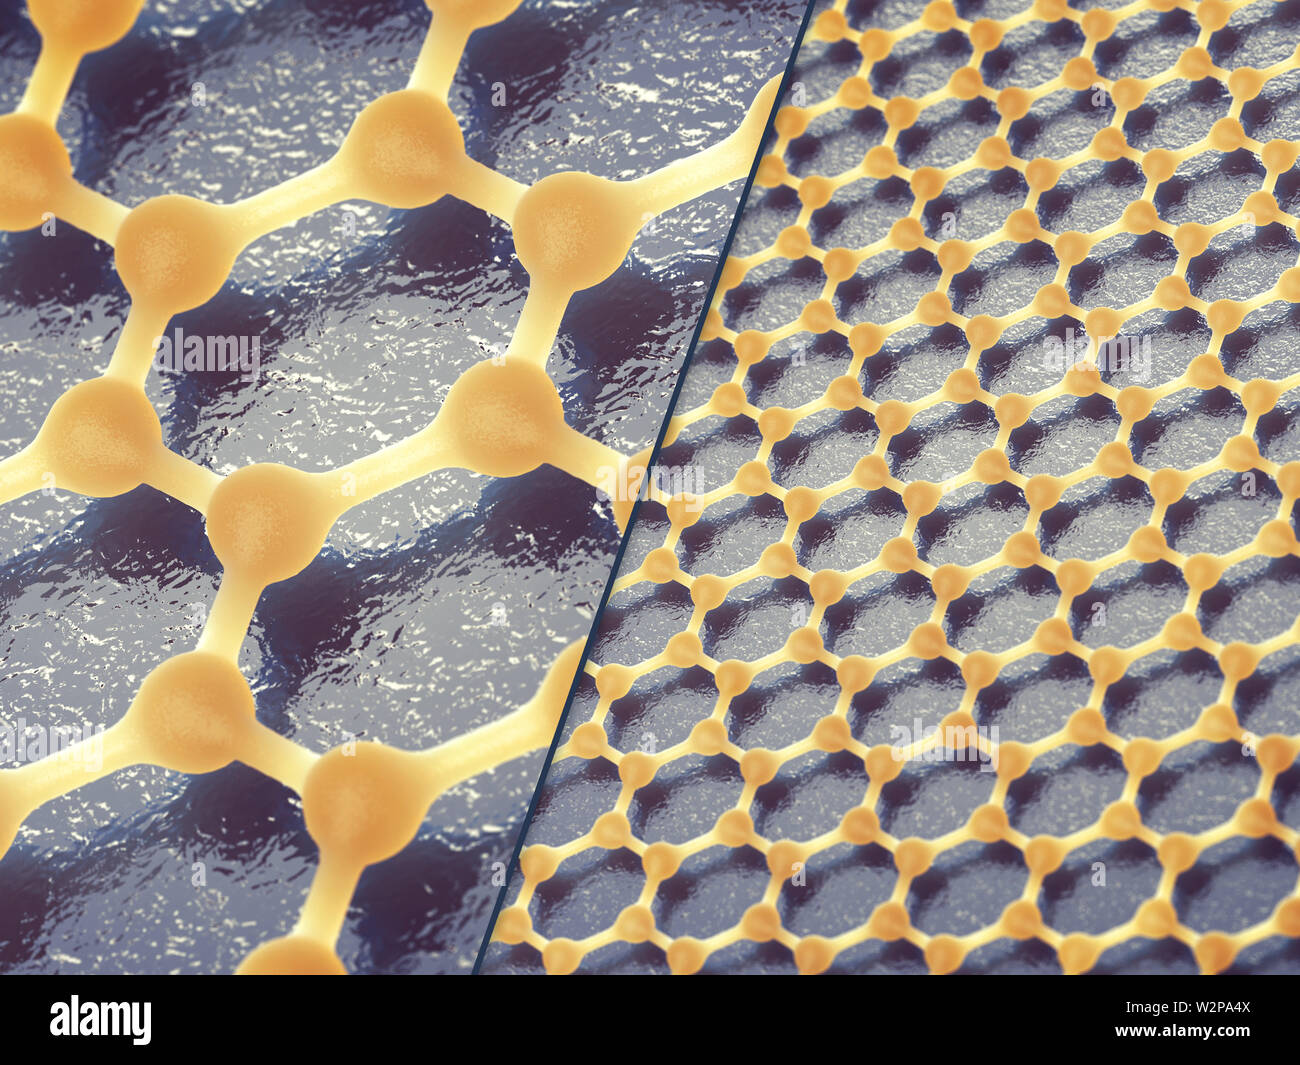 Graphene is composed of carbon atoms distributed in hexagonal pattern, Graphene based nanotechnology - Stock Image